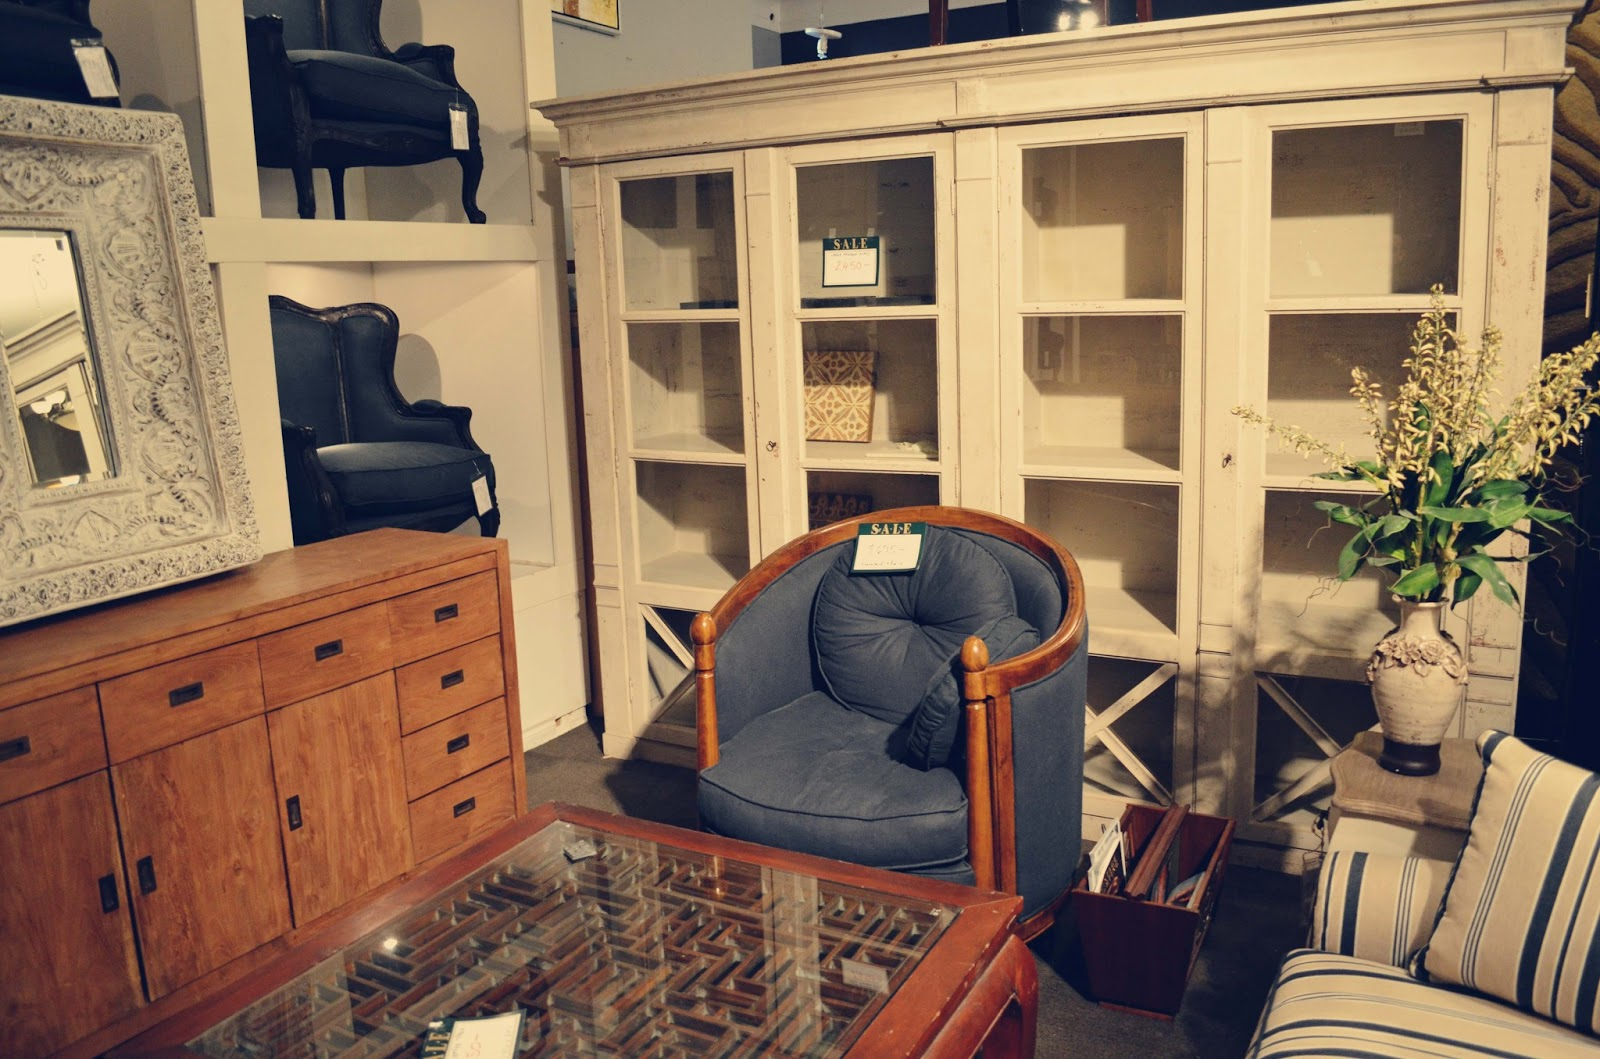 Cornerstone Home Interiors | Woman In Real Life The Art Of The Everyday The Junction